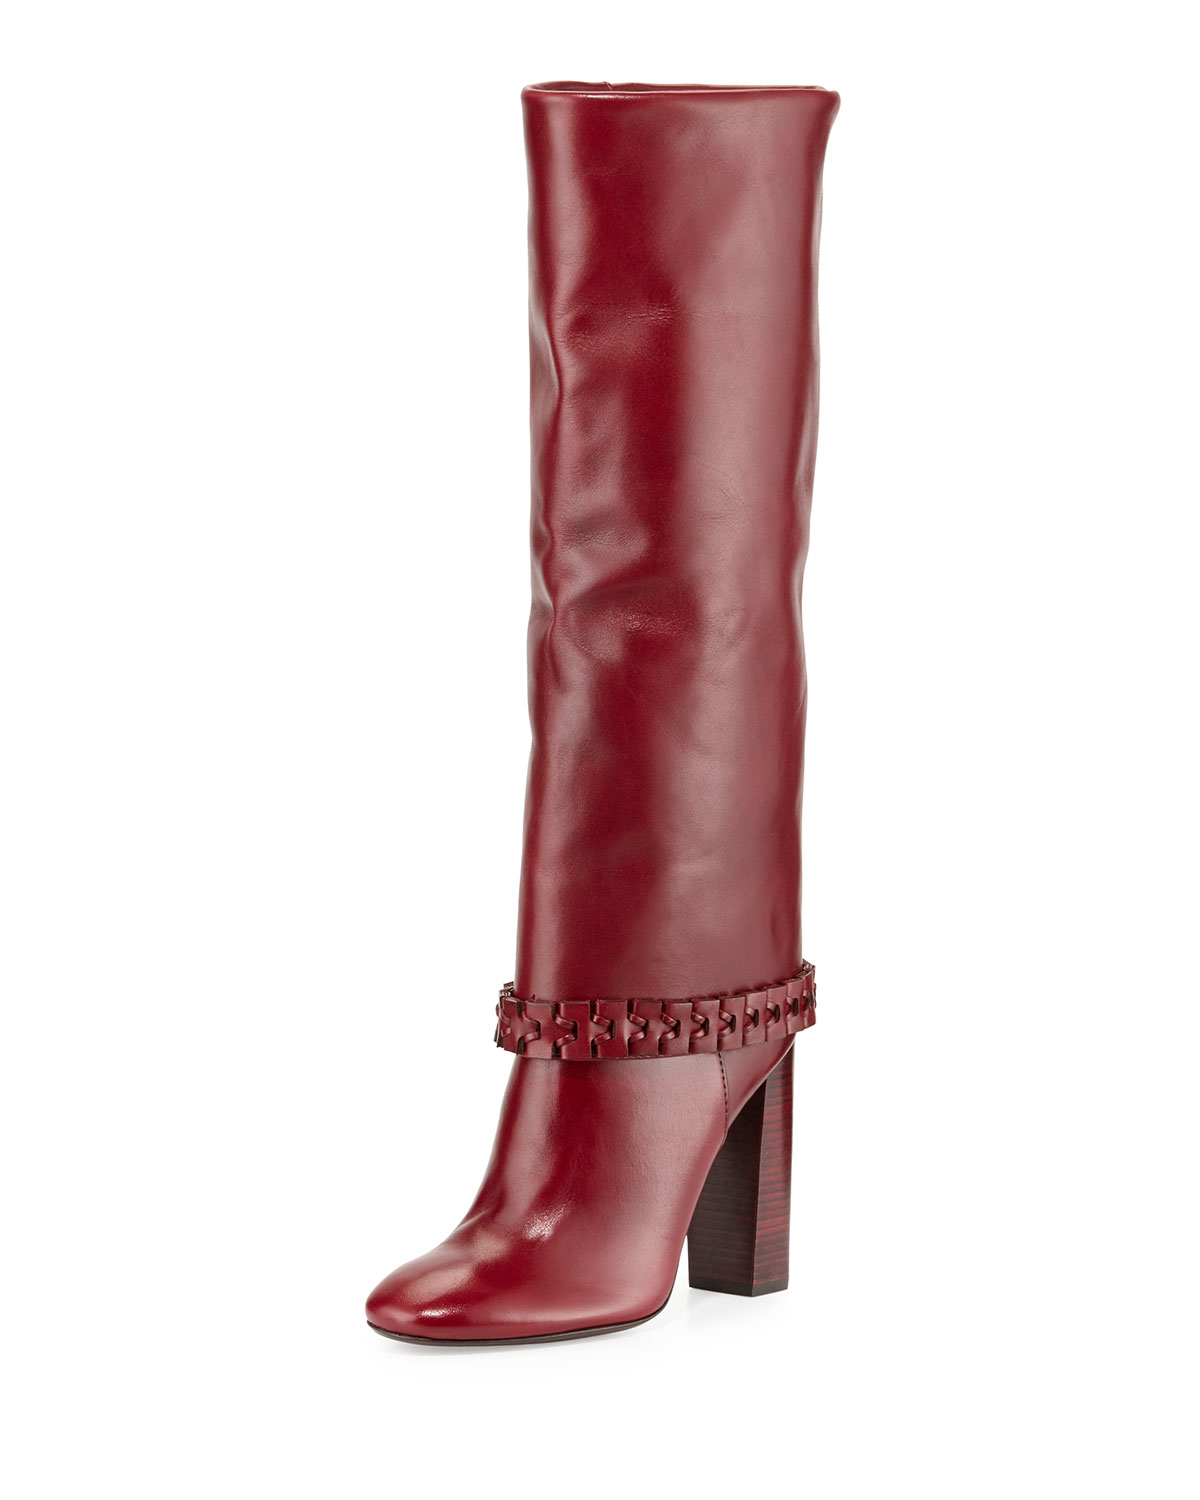 a63b21480e08 Stand tall in leather knee high boots like Lady Gaga. Tory Burch Sarava ...